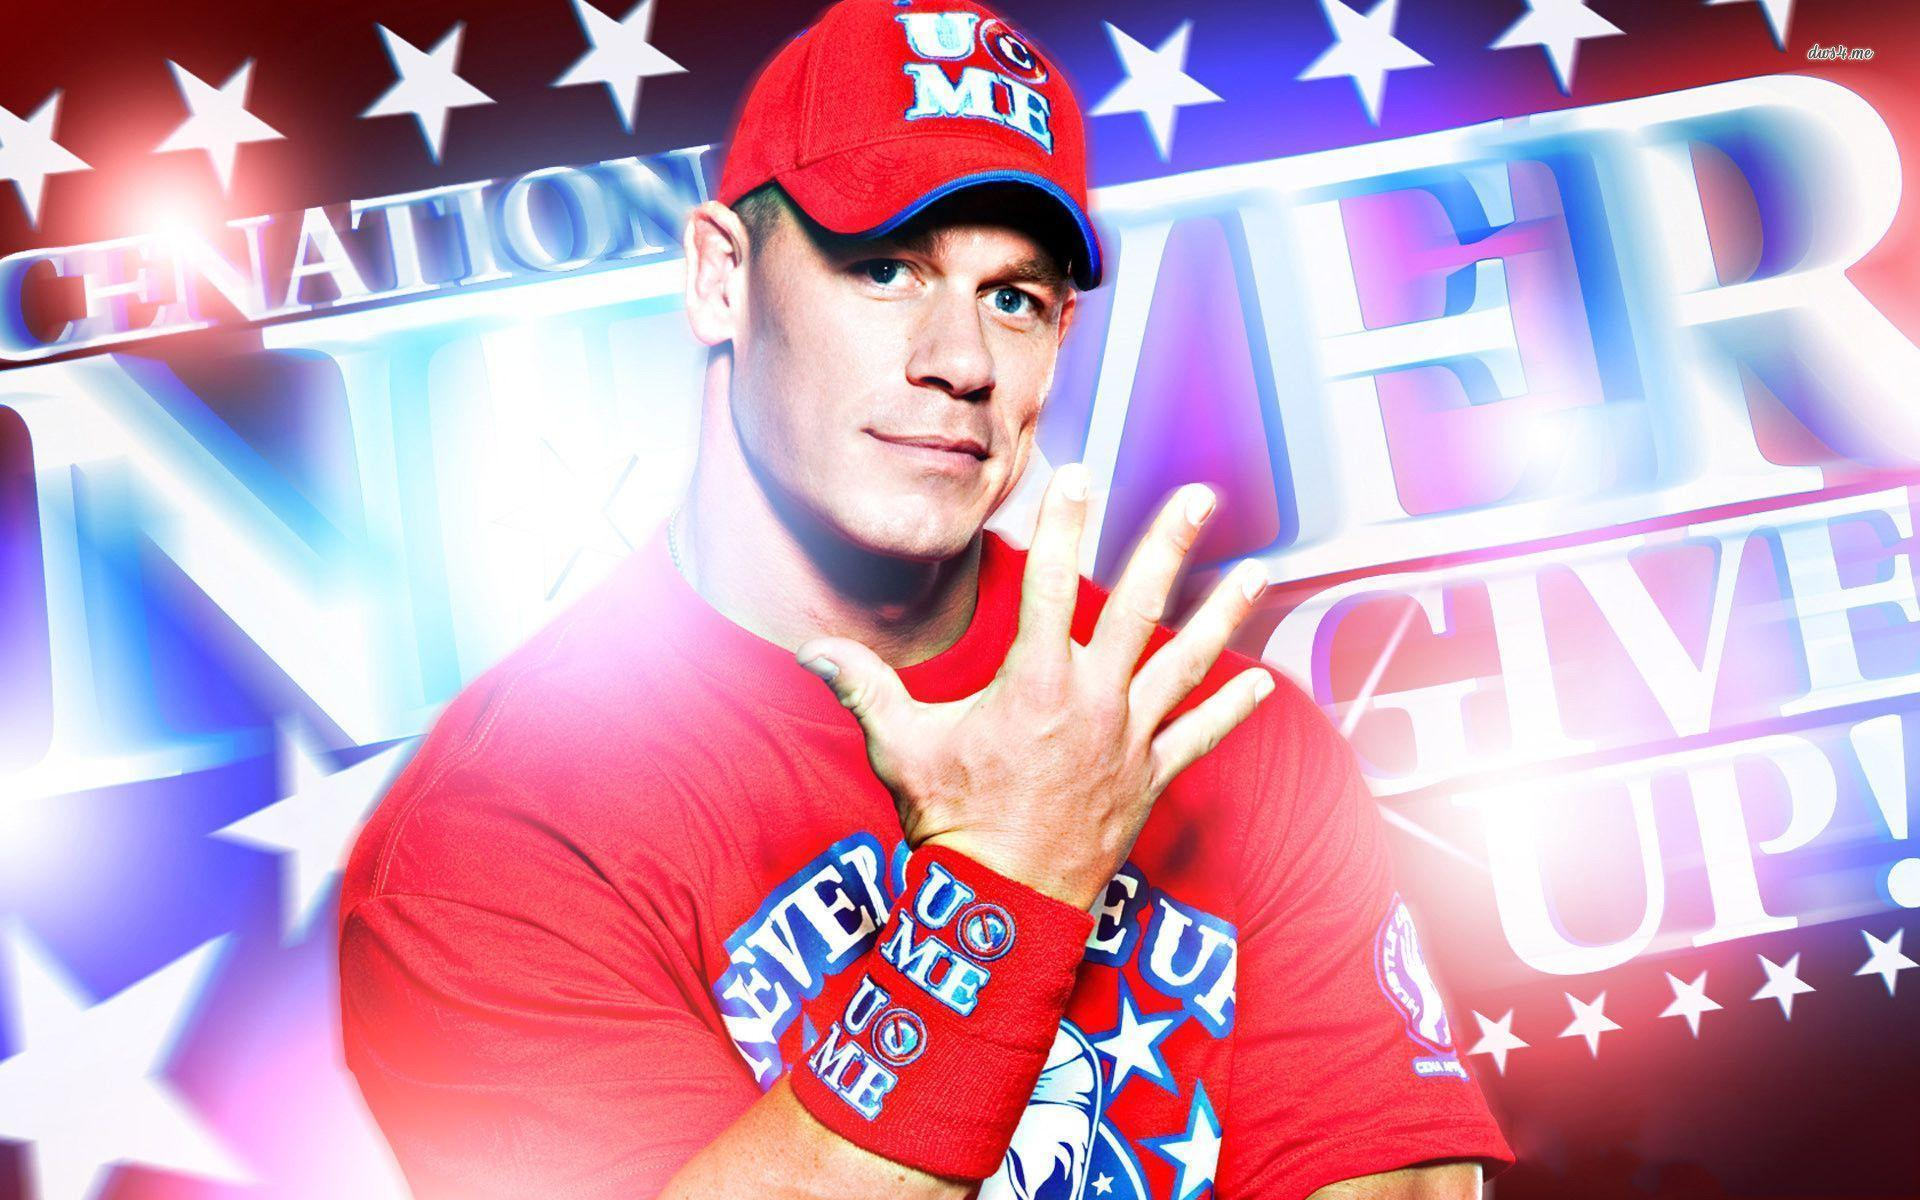 WWE John Cena Wallpapers 3 1530 HD Wallpapers